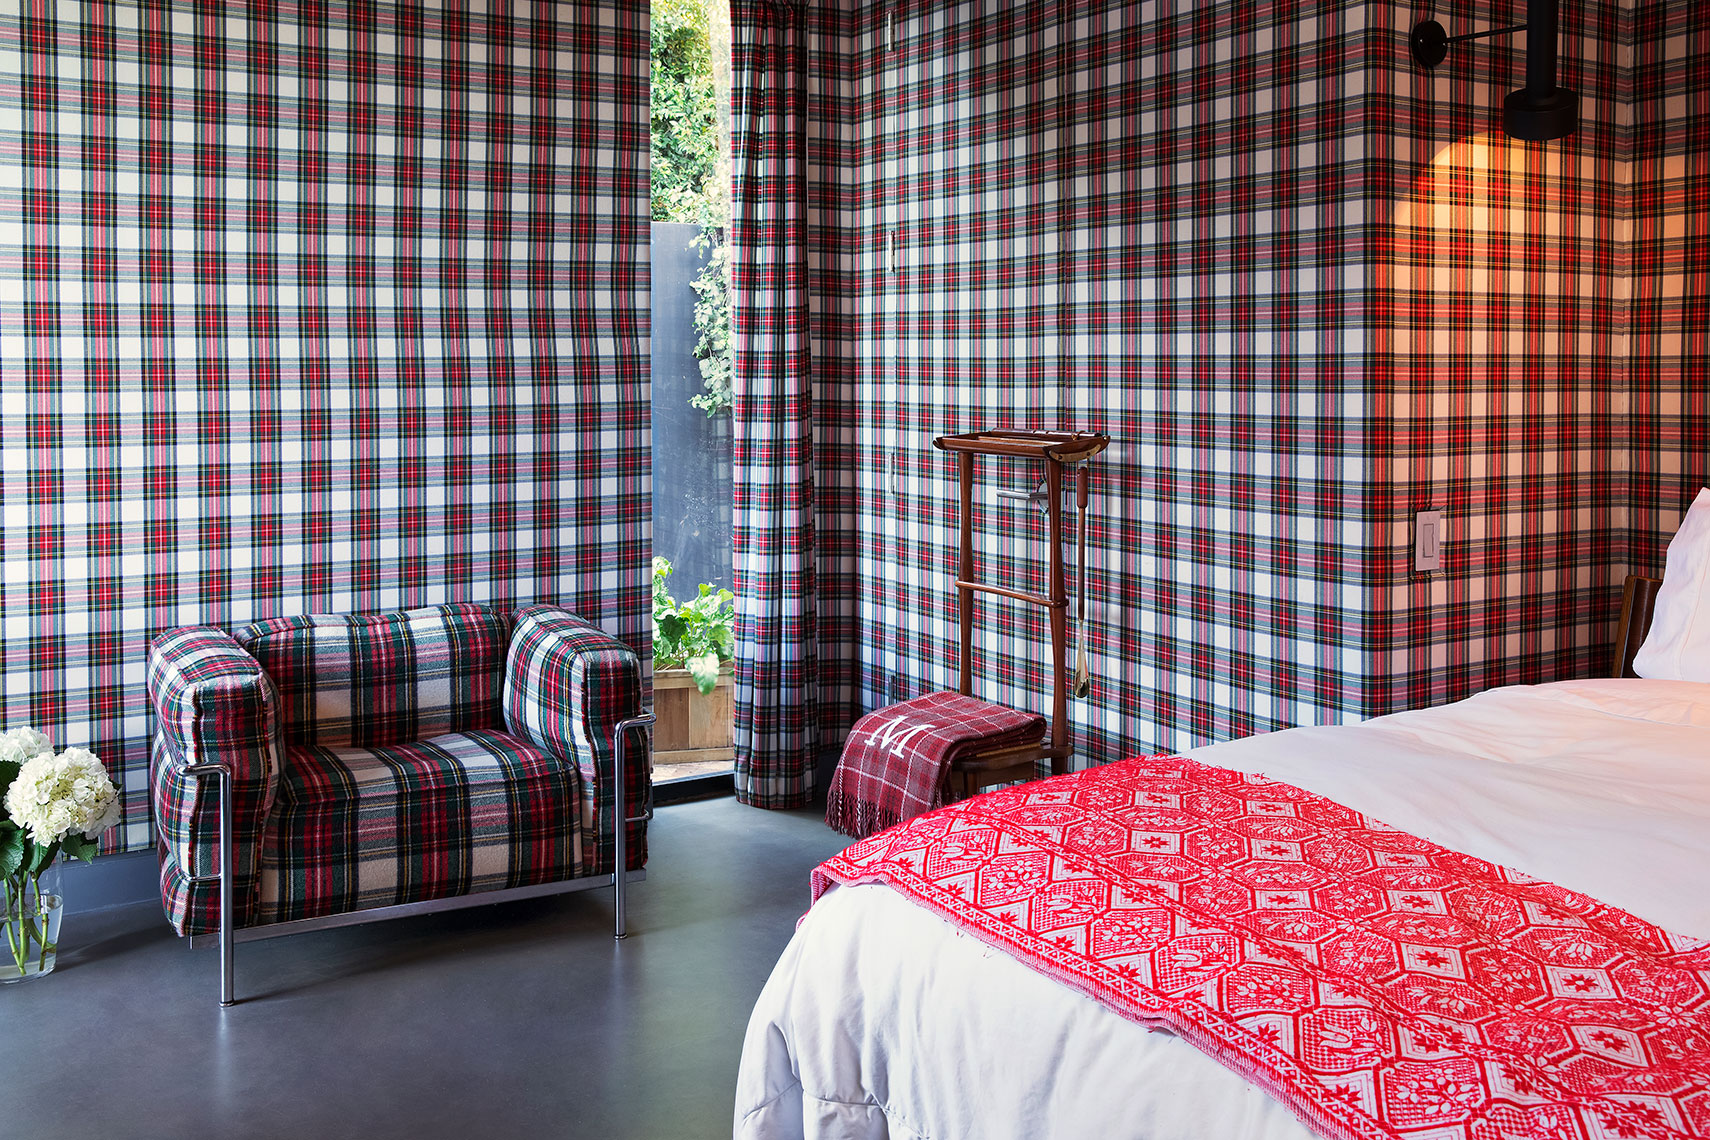 Childers_Plaid-Room_Joan-Allen